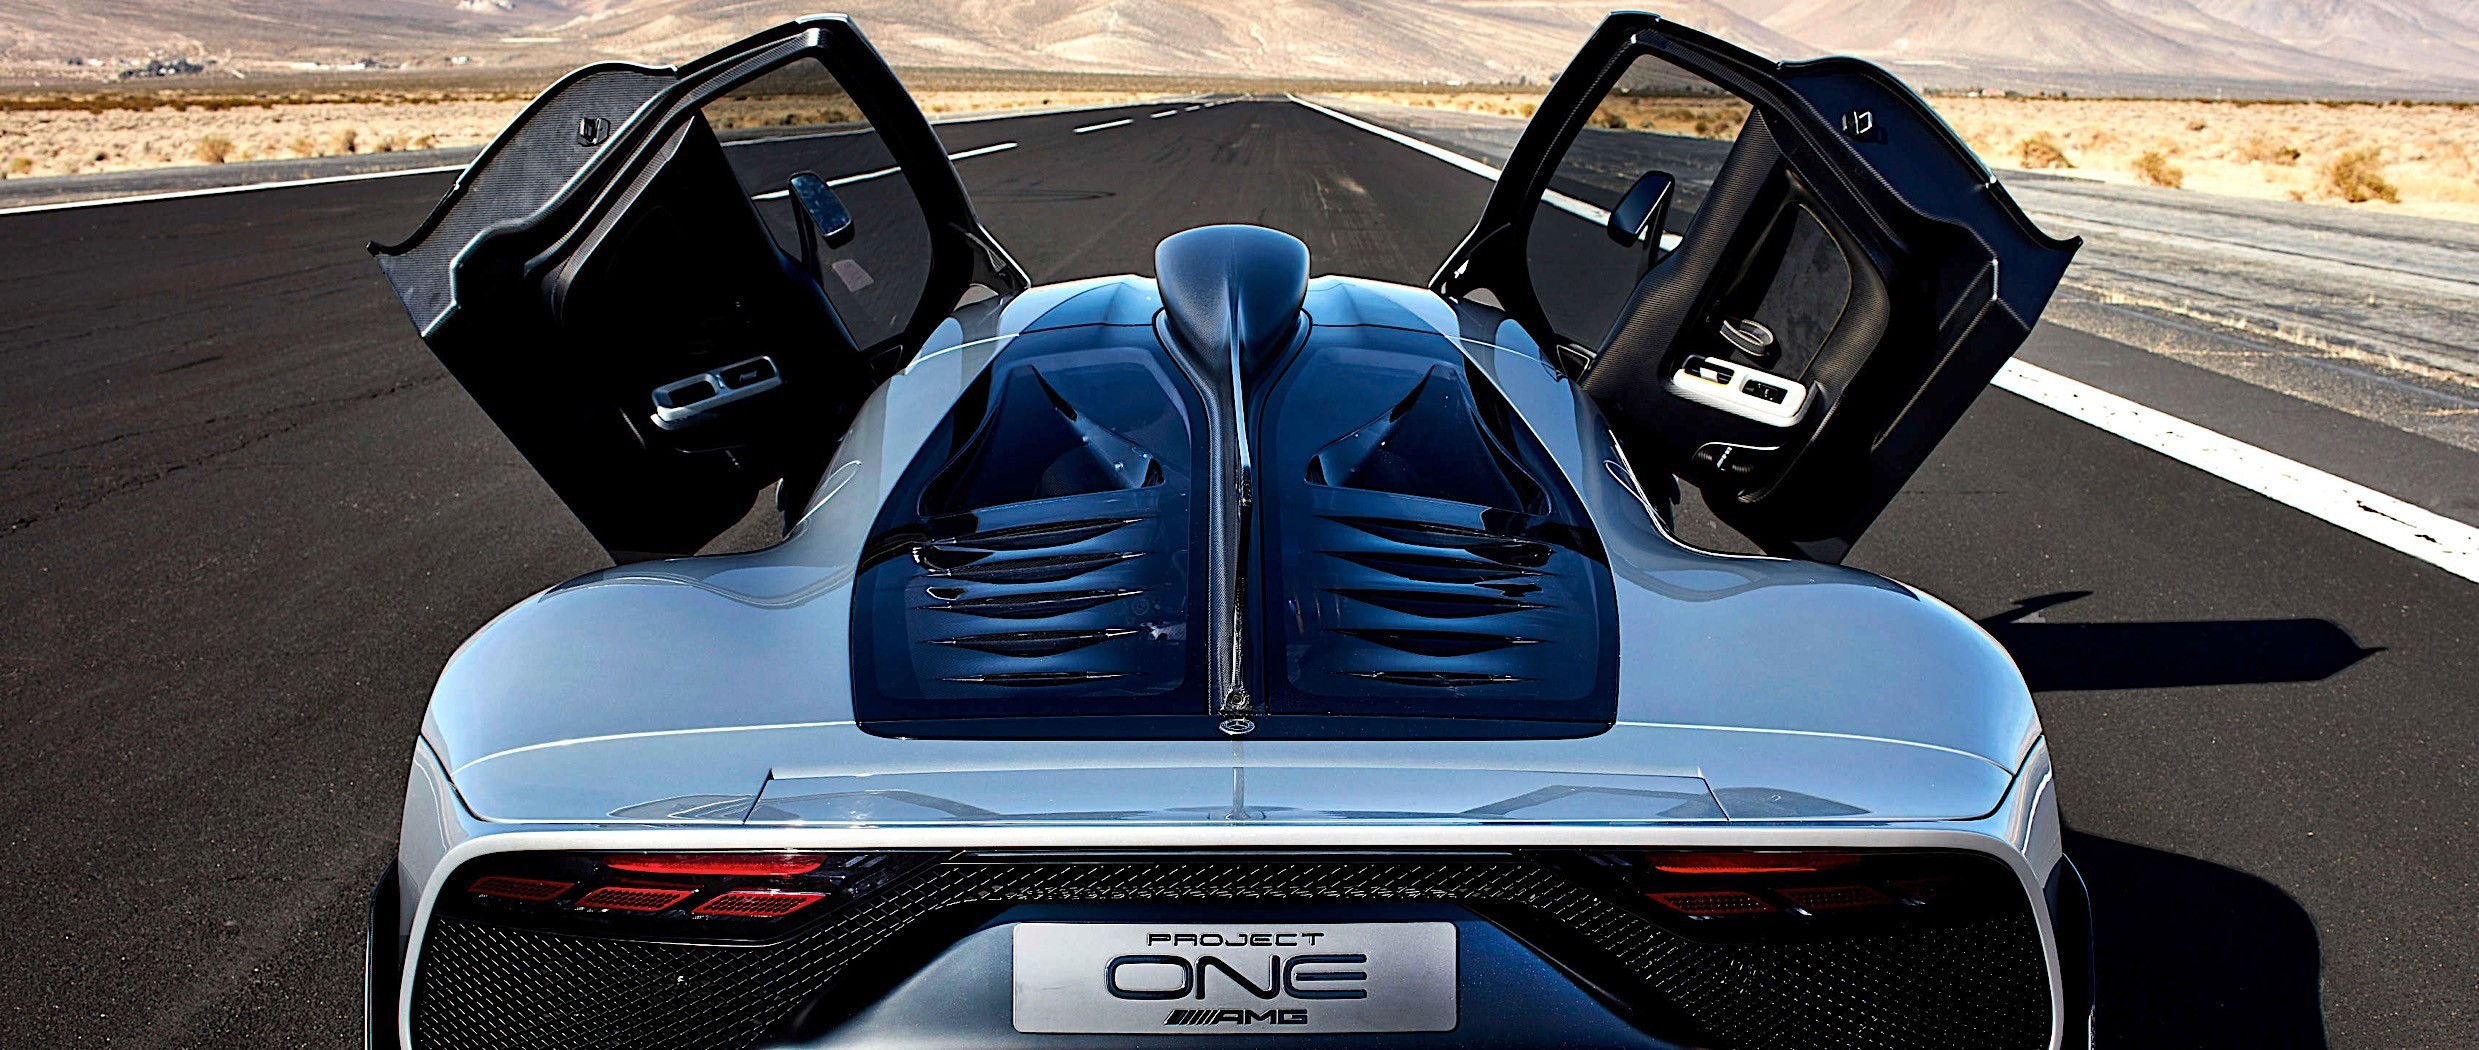 Amg Project One >> Mercedes-AMG Project One Shines in New Wallpaper Gallery - autoevolution